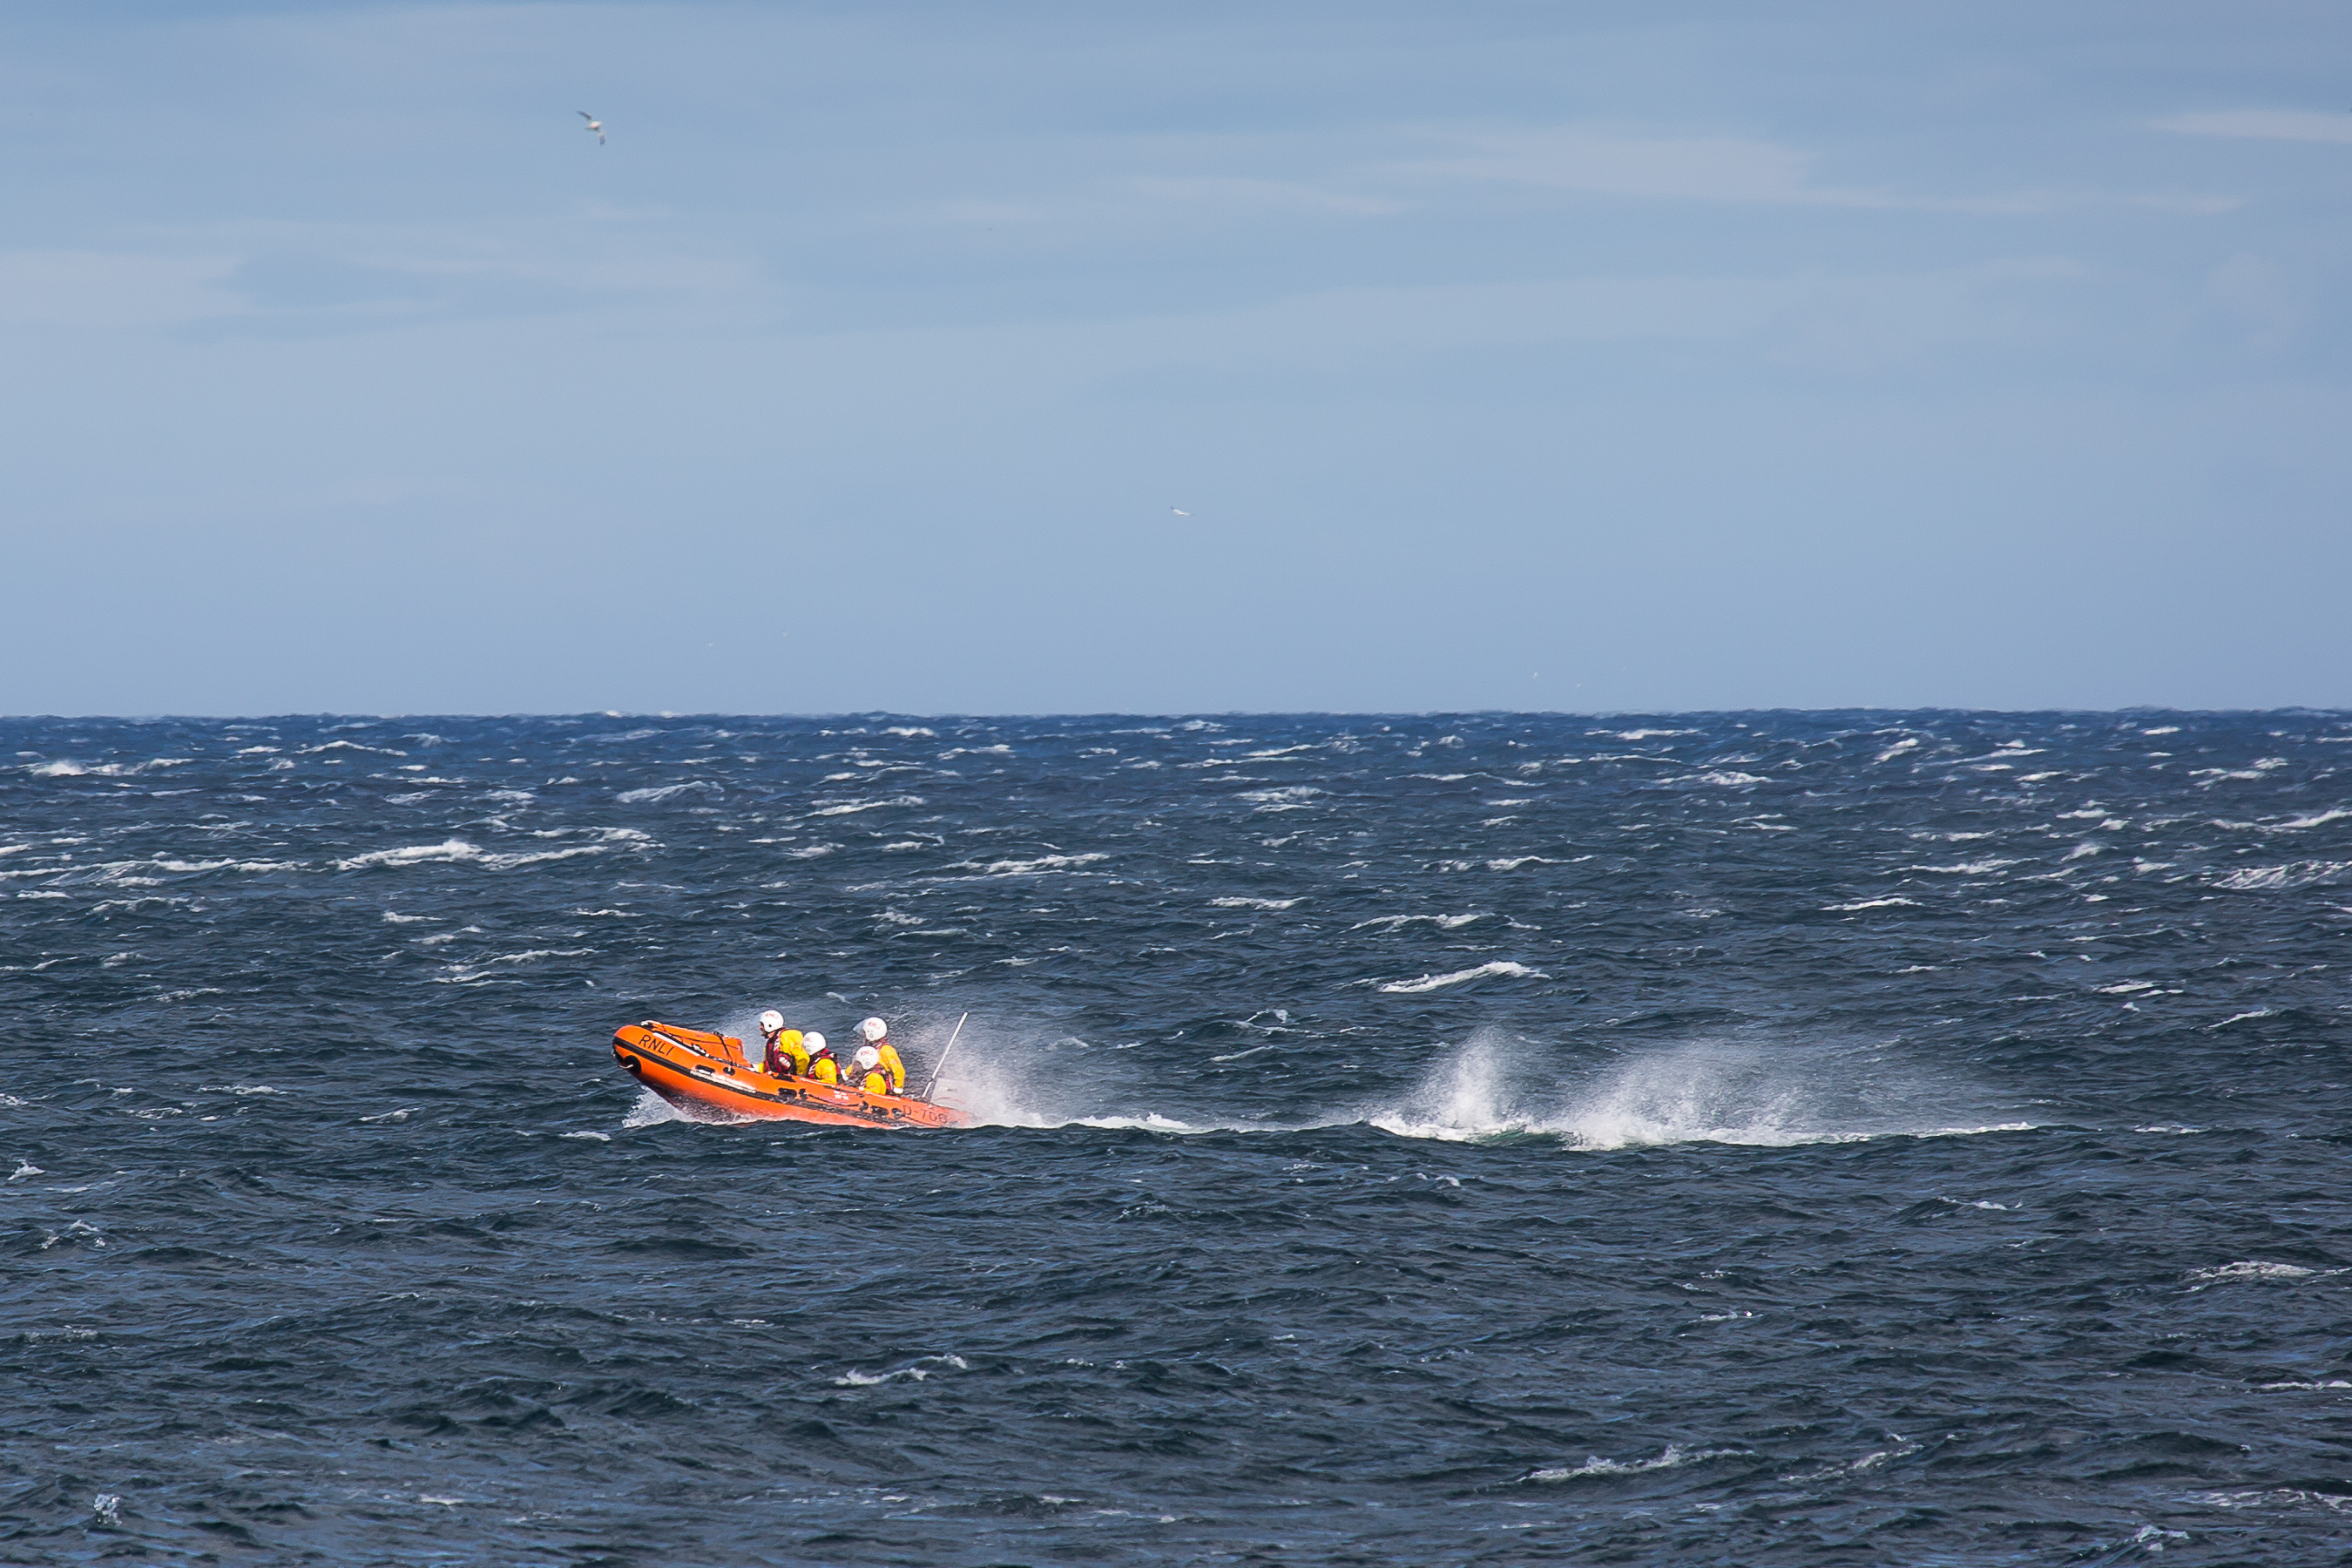 Dunbar ILB races through rough conditions to locate casualty. Blue skies overhead and excellent visibility. The azure blue sea is rough and capped with many white horses. The bright orange boat with it's bow risen in the surf travels from right to left and is followed by a heavy wake that is broken by the strong wind creating a lot of spray. 4 crew members are visible on board.